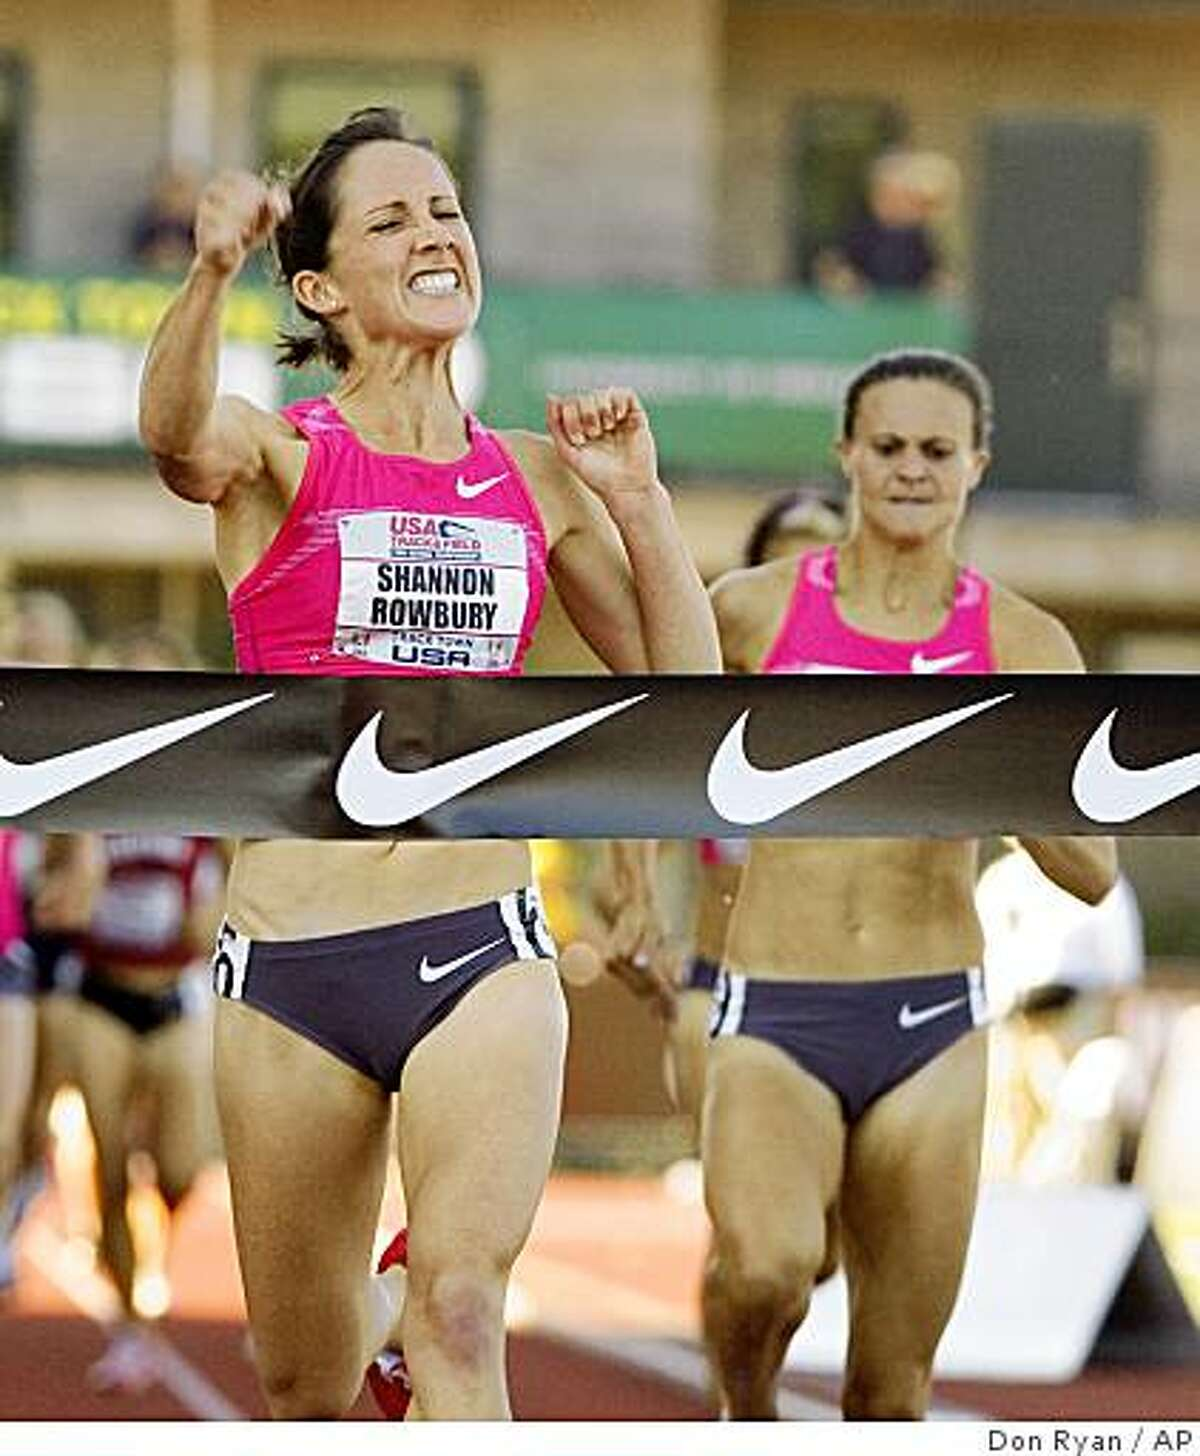 Shannon Rowbury, left, hits the tape ahead of Christin Wurth to win the 1,500 meter race during the U.S. Track and Field Championships in Eugene, Ore., Saturday, June 27, 2009. Rowbury won with a time of 4:05.07 and Wurth took second in 4:06.00.(AP Photo/Don Ryan)